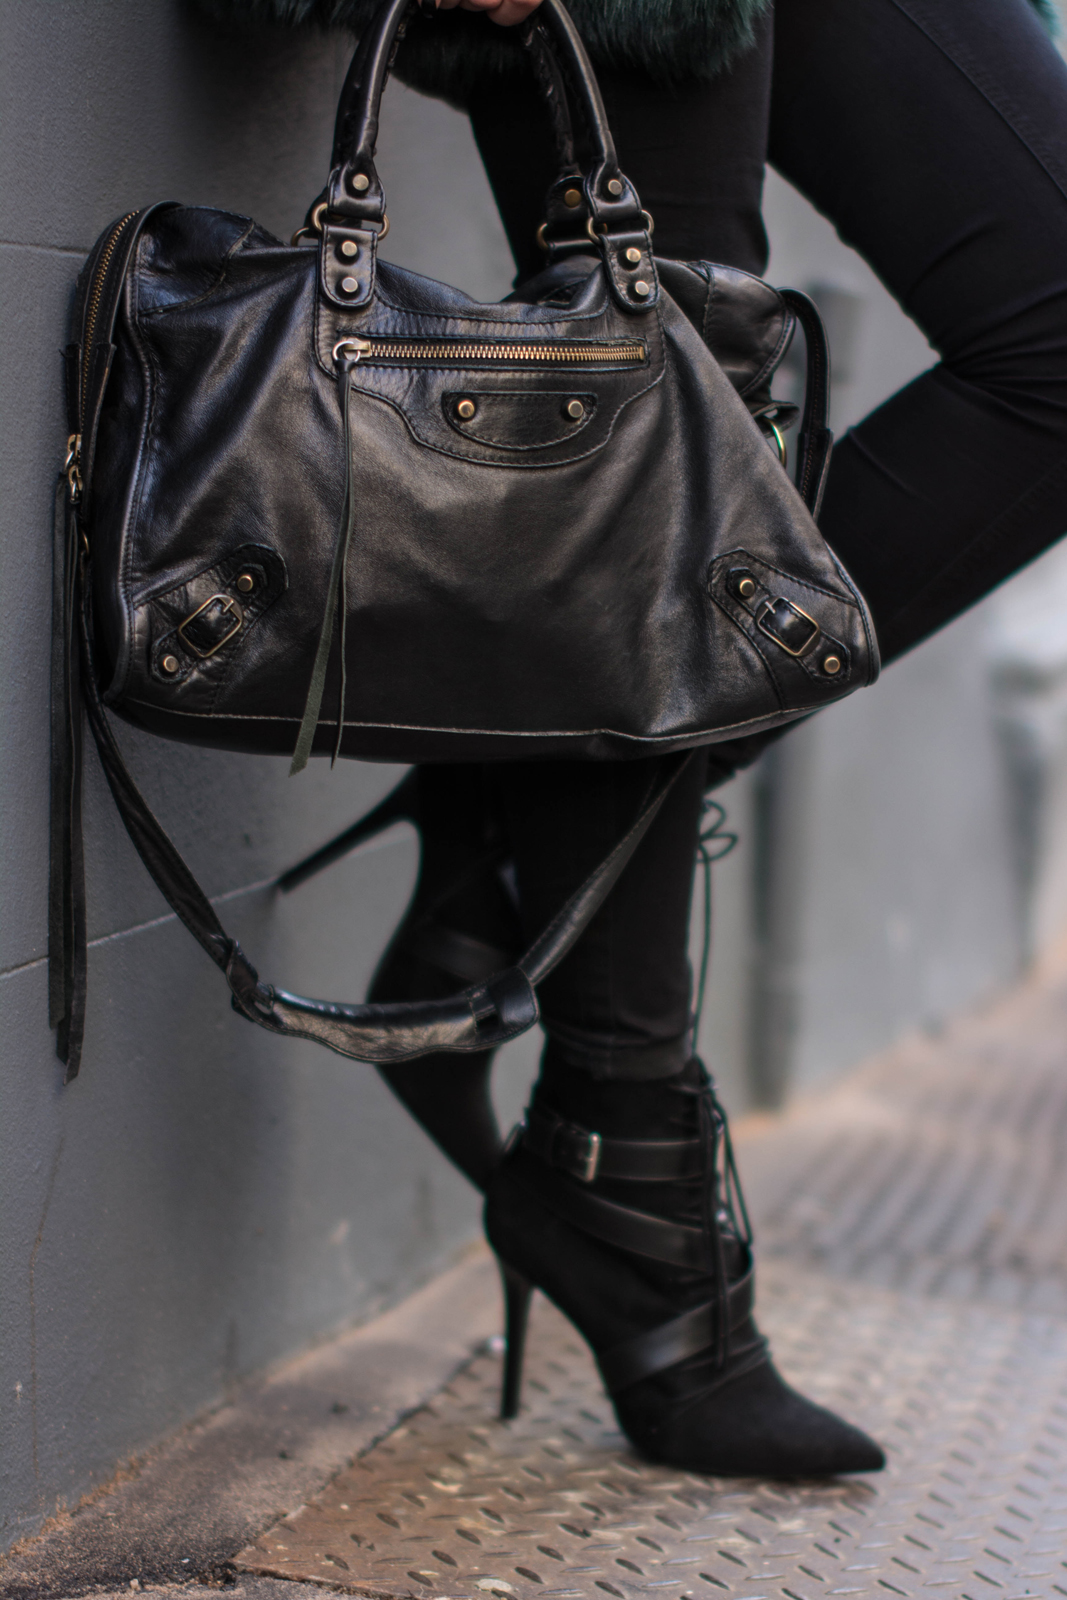 EJSTYLE - Balenciaga classic le city bag, Black skinny jeans, Zara lace up ankle boots SS15, winter outfit, influential fashion bloggers, Emma Hill